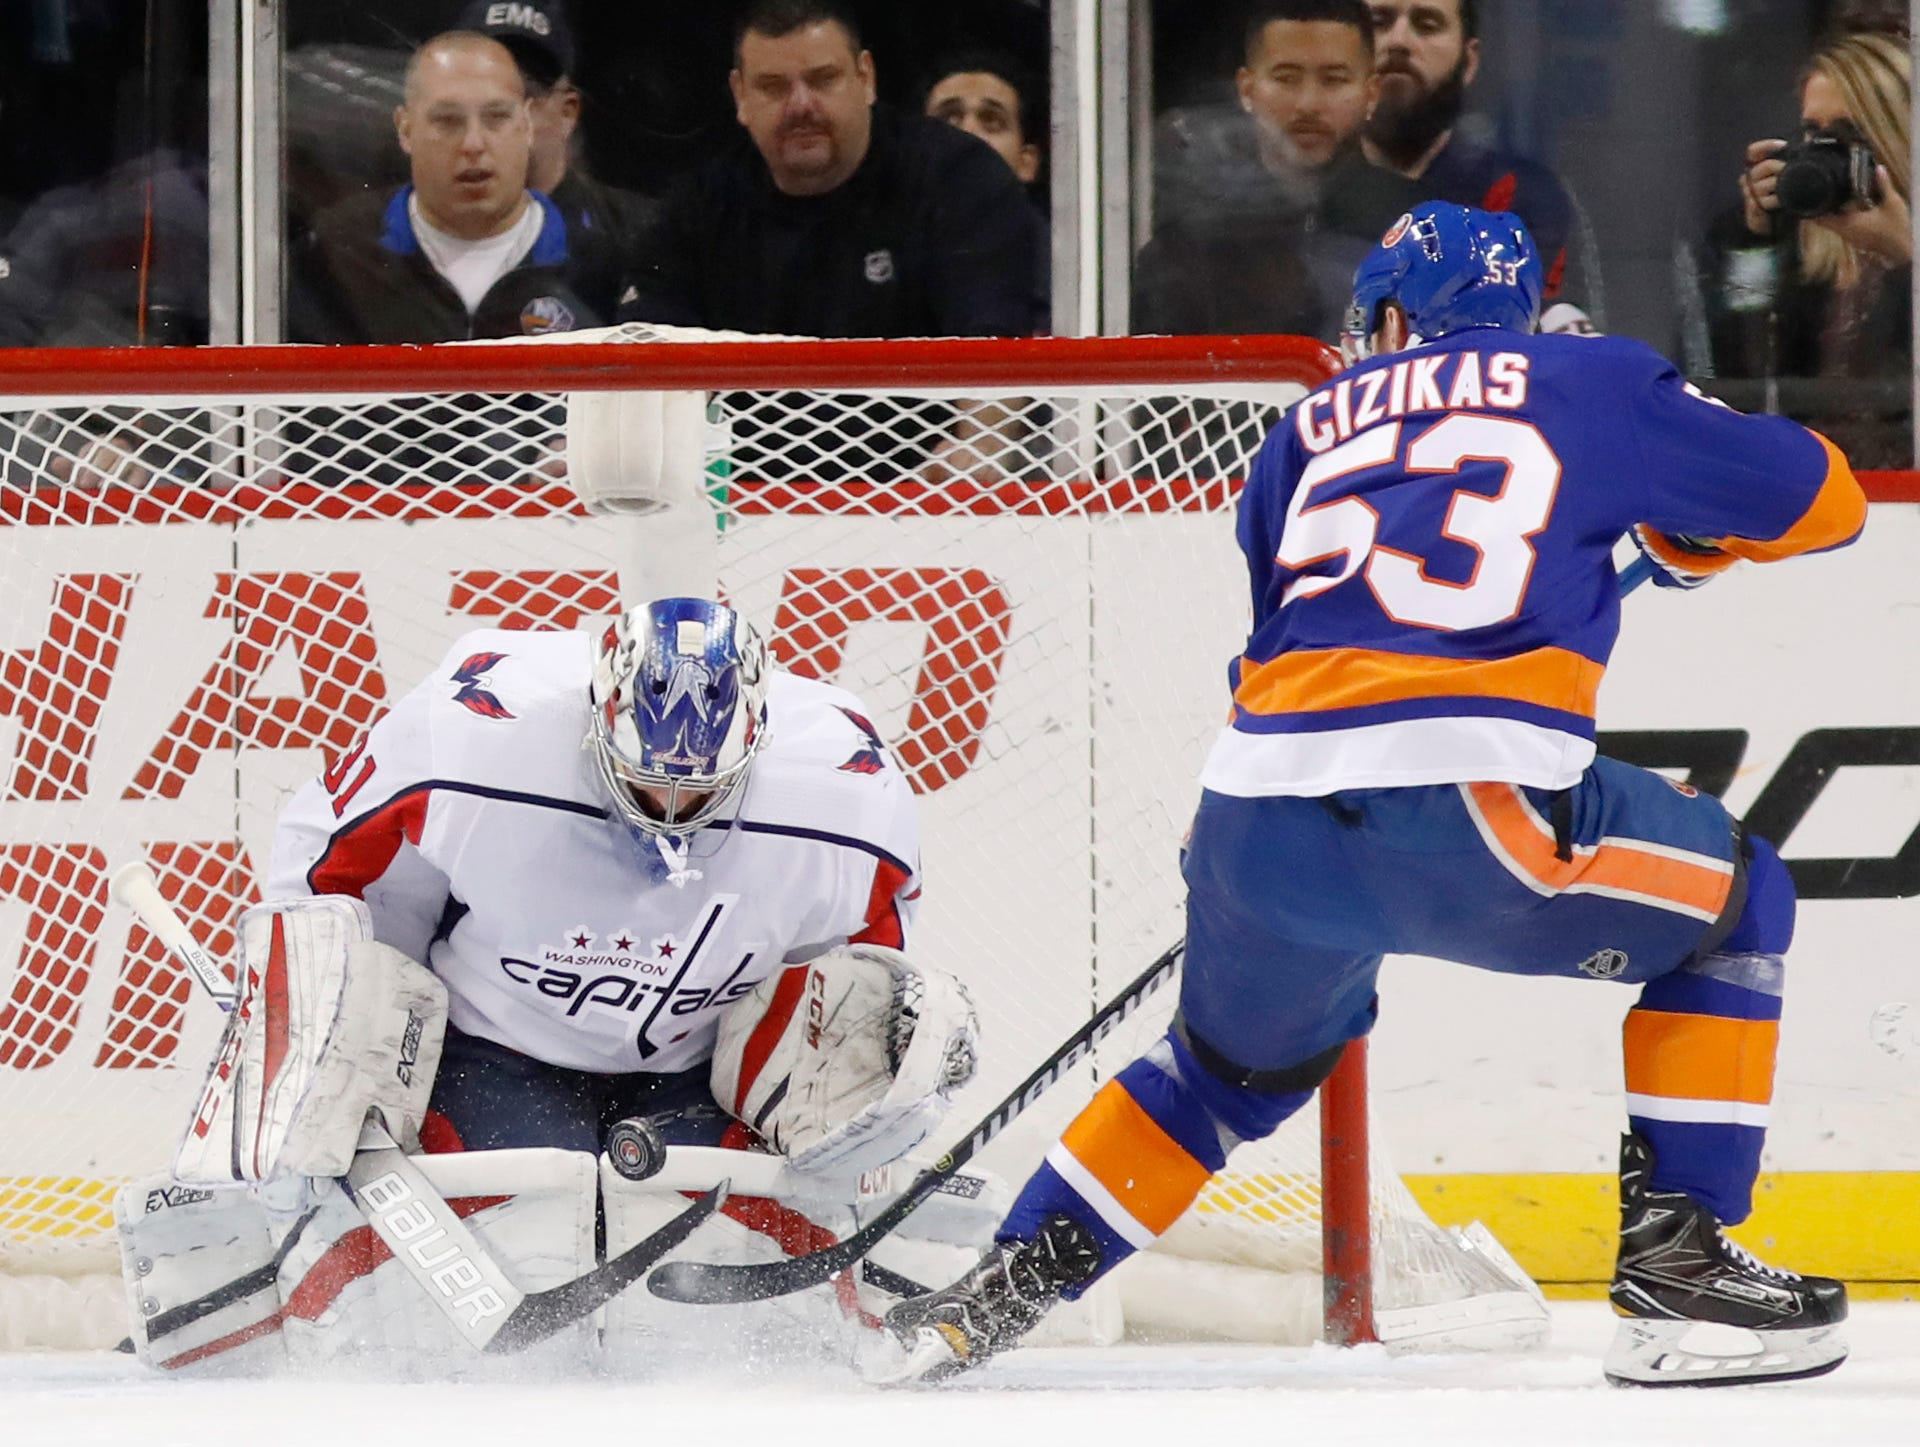 Oshie scores 2 as Capitals rout Islanders 7-3